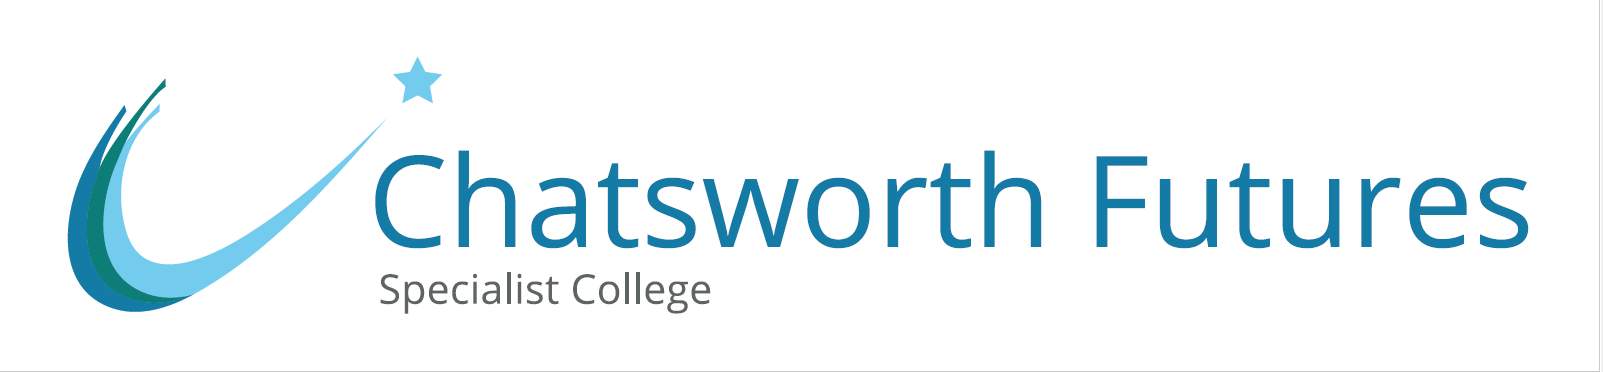 The logo of Chatsworth Futures